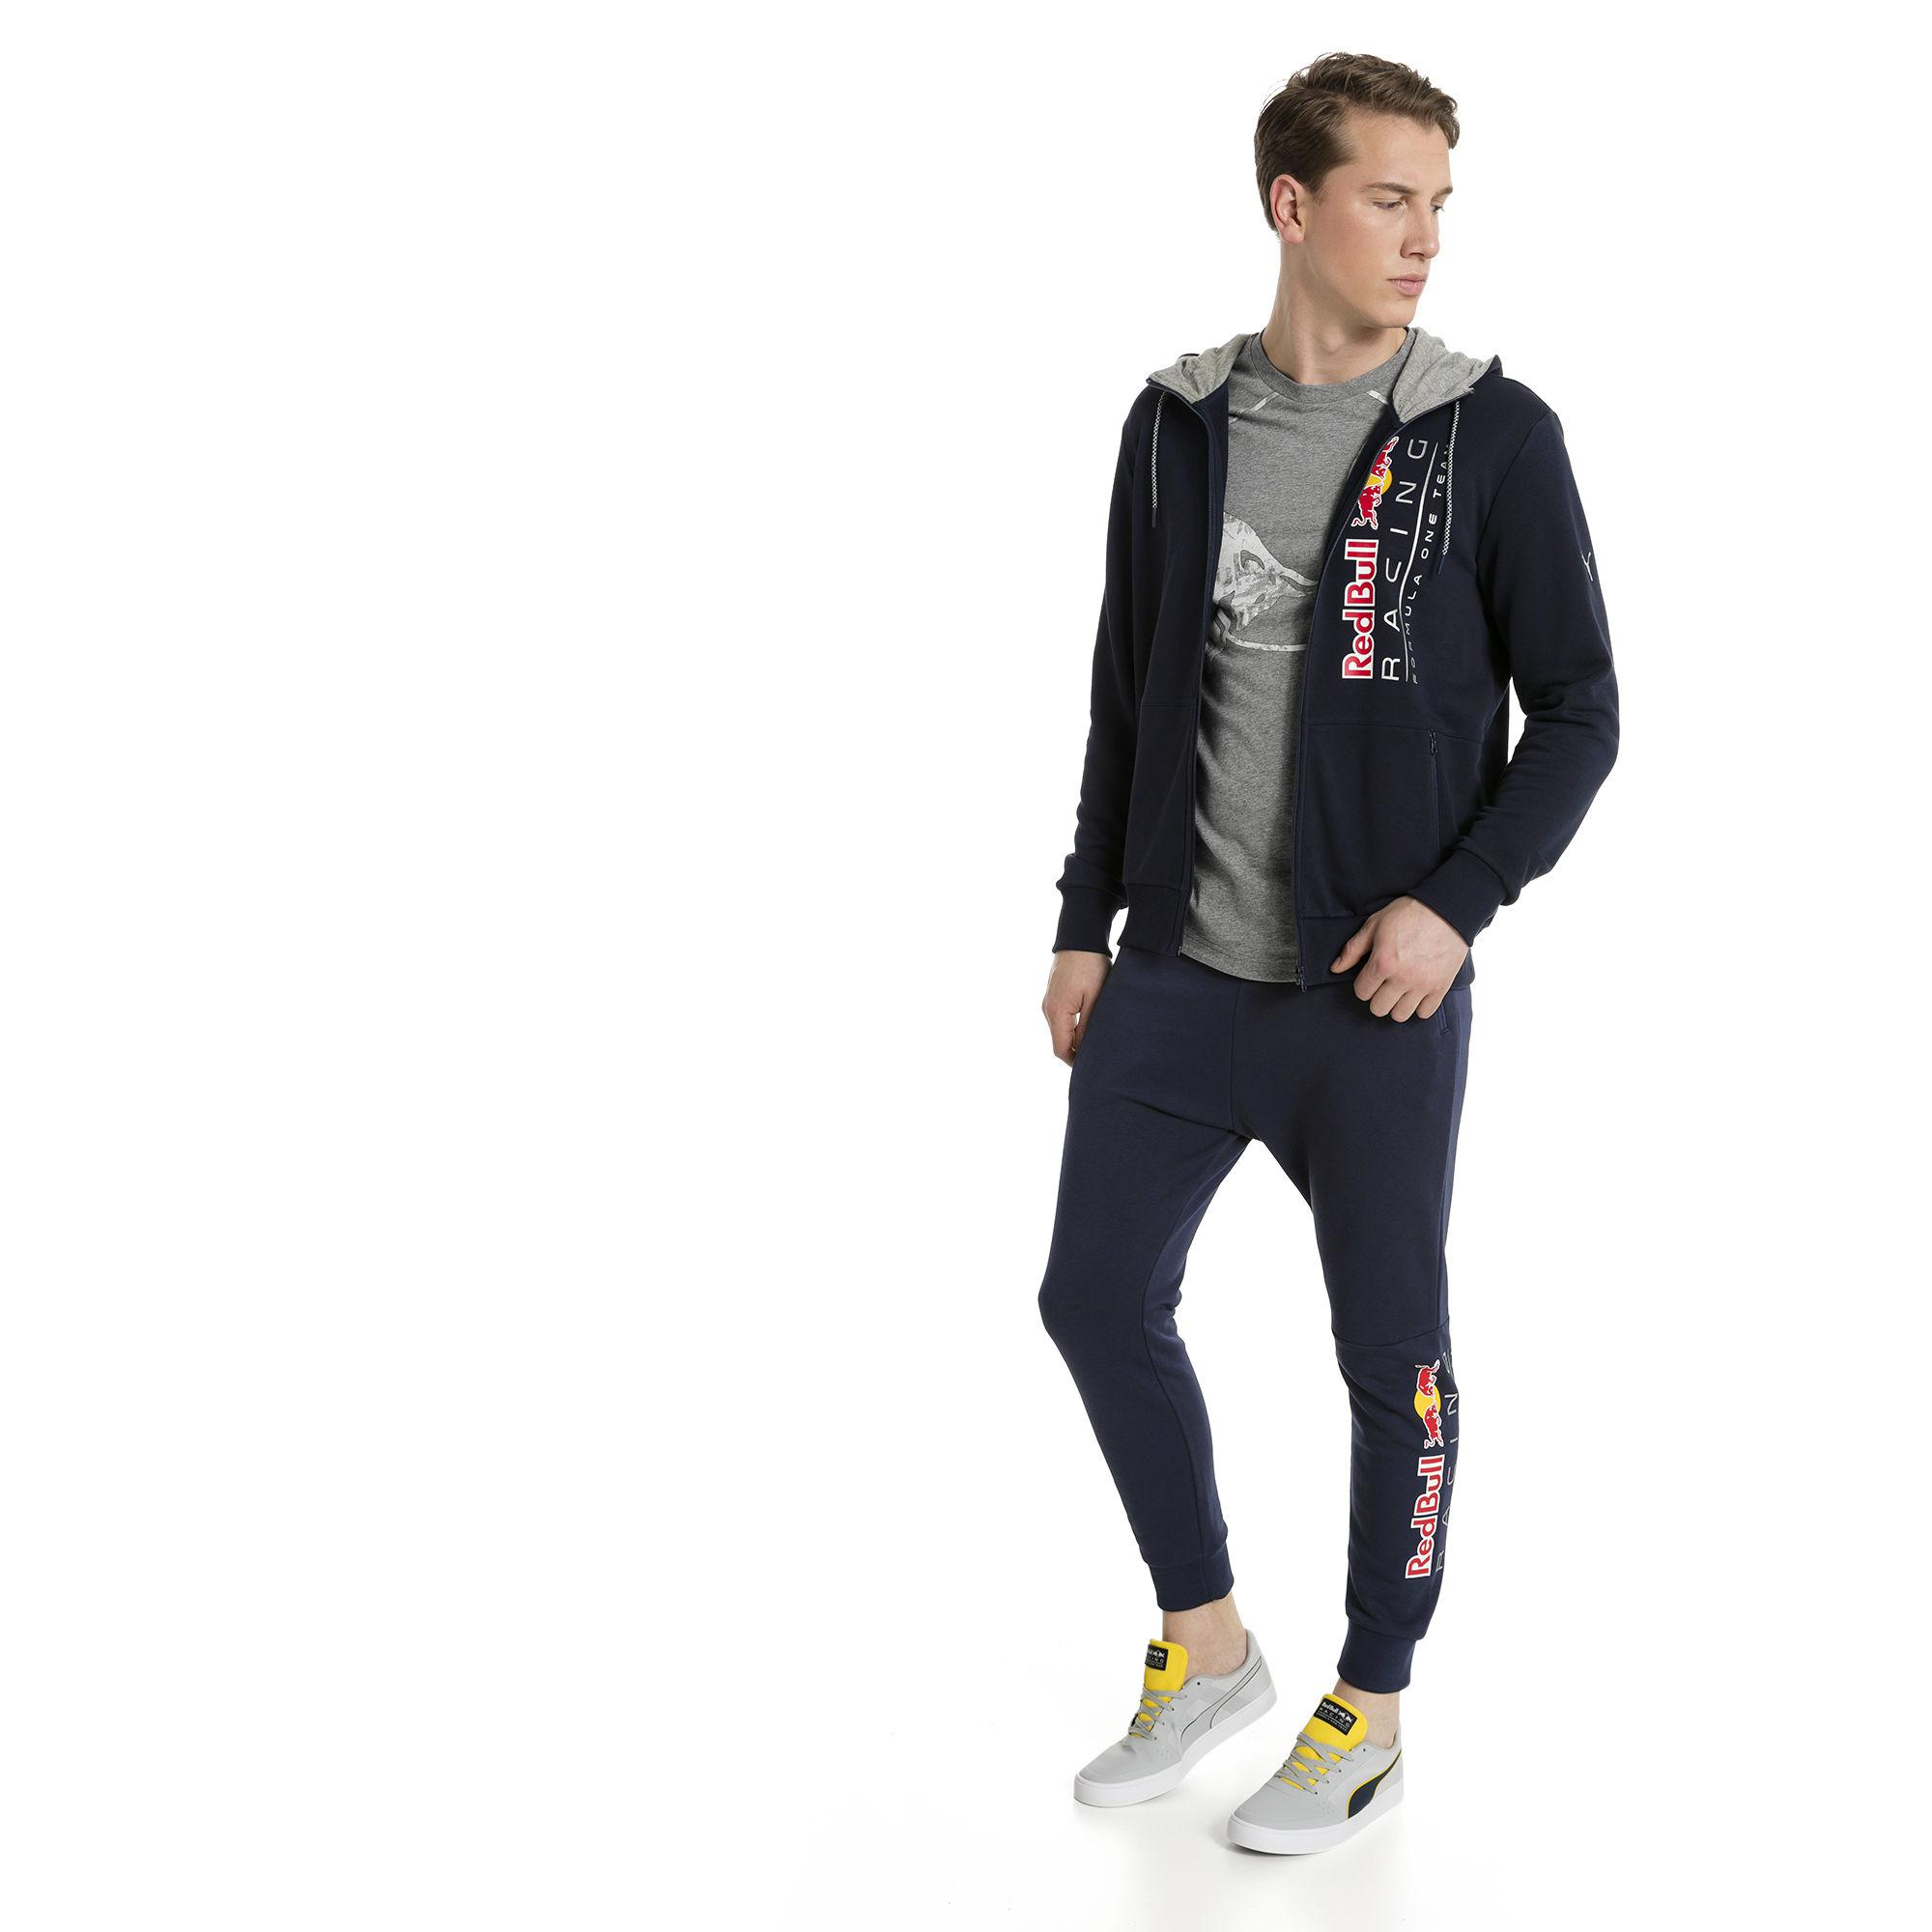 4969c7fa76a3 Lyst - PUMA Red Bull Racing Lifestyle Sweatpants in Blue for Men